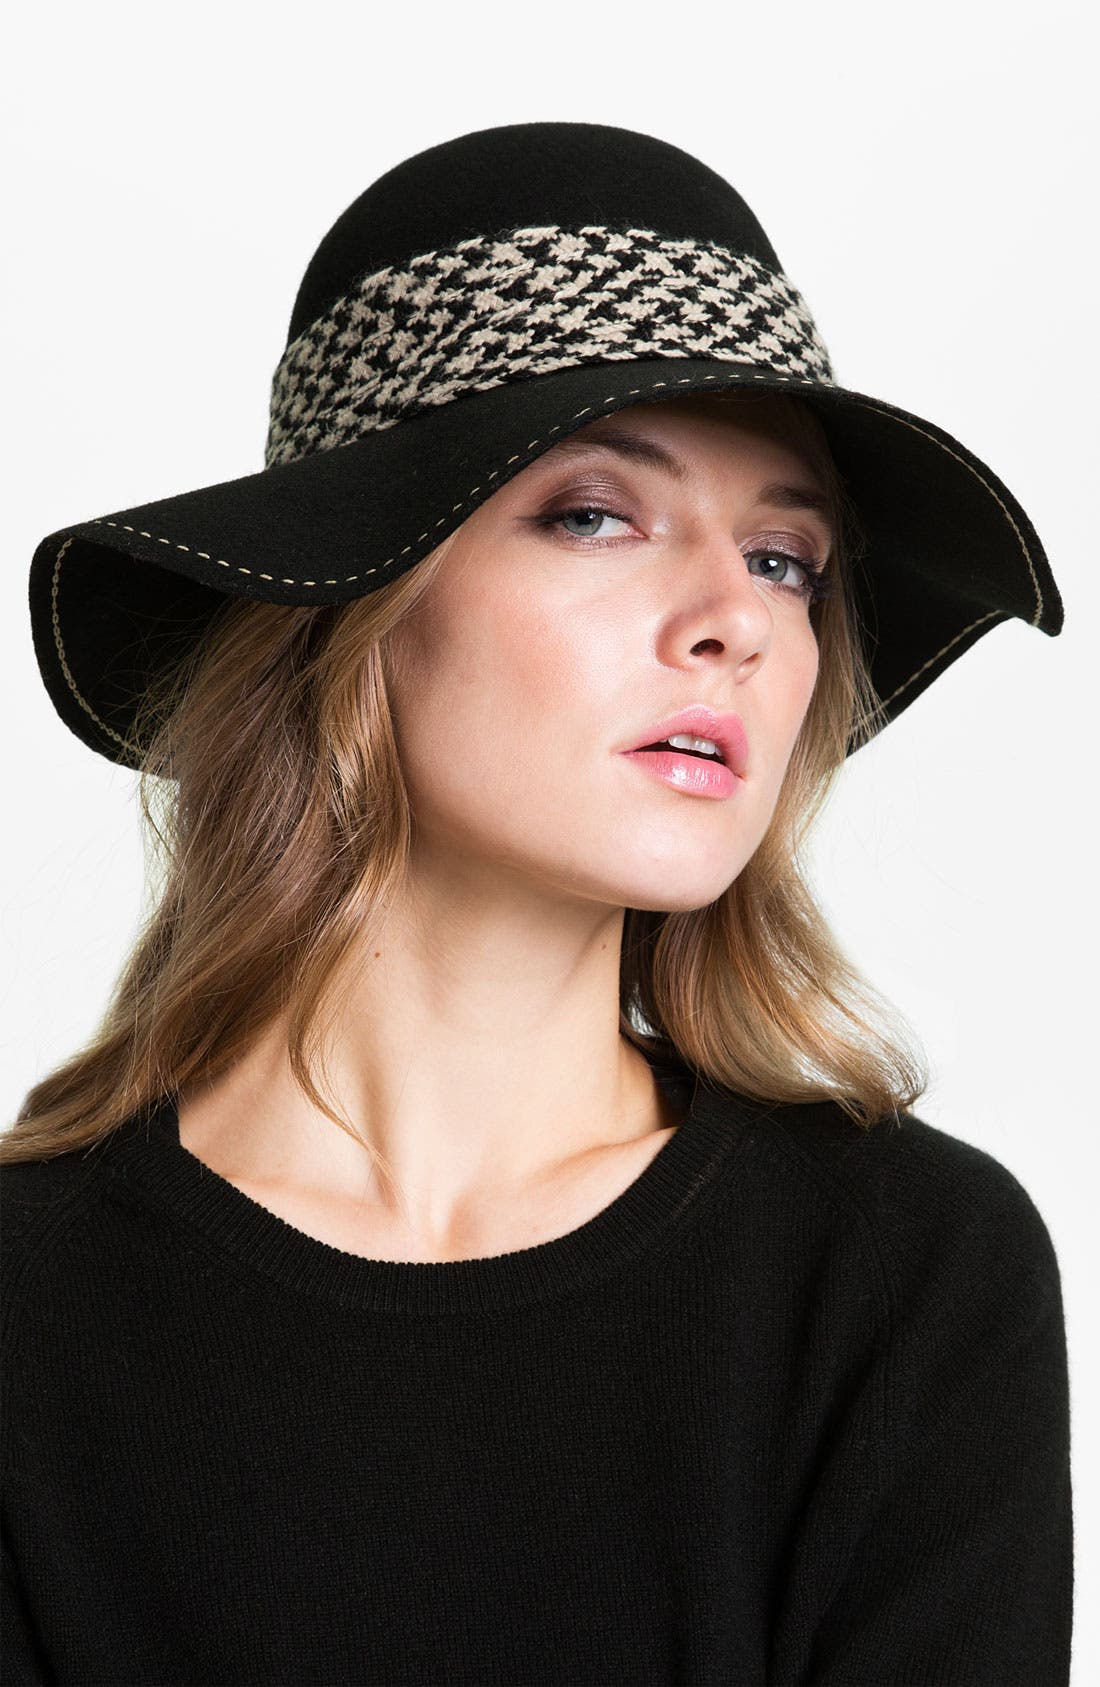 Alternate Image 1 Selected - Halogen® Houndstooth Trim Floppy Wool Hat